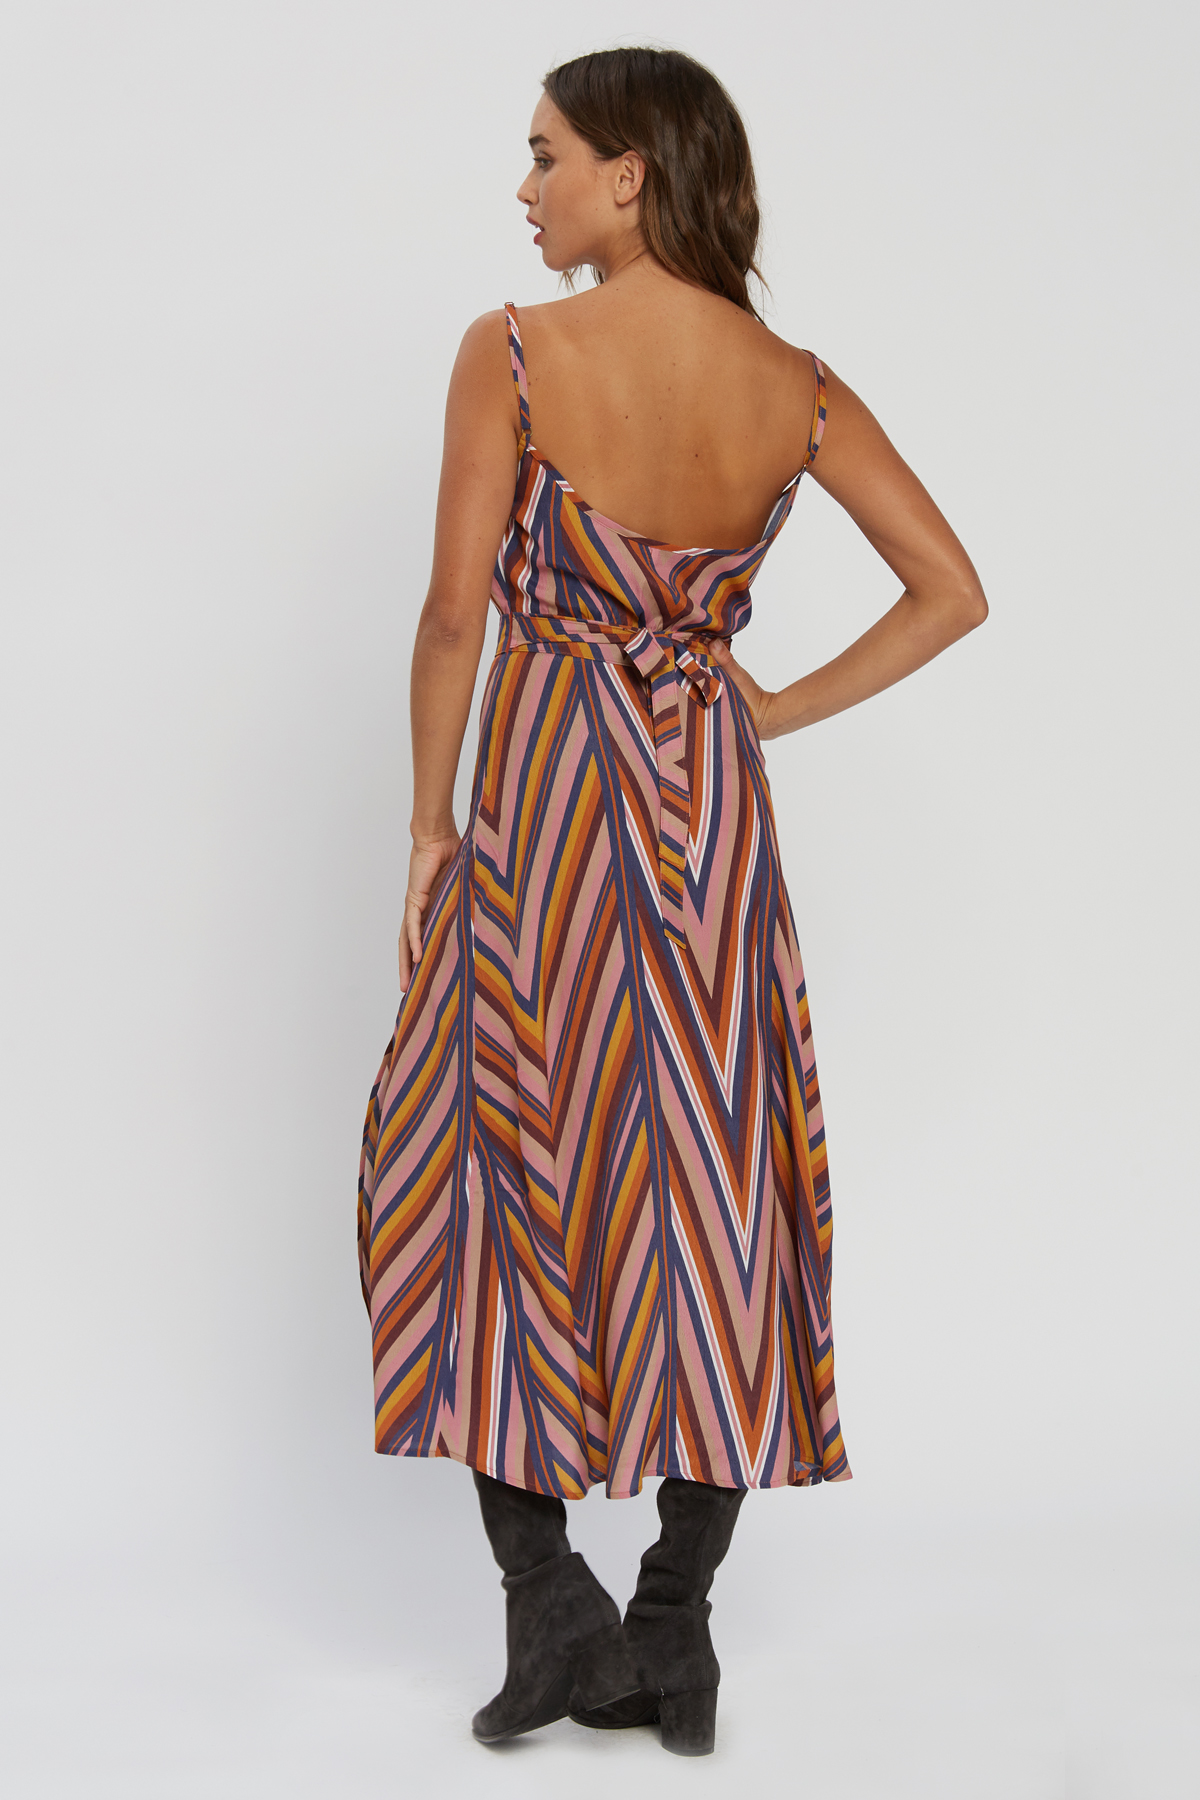 d591e4f4e712e Hazel Stripe Midi Dress - Ziggy — IMWIM